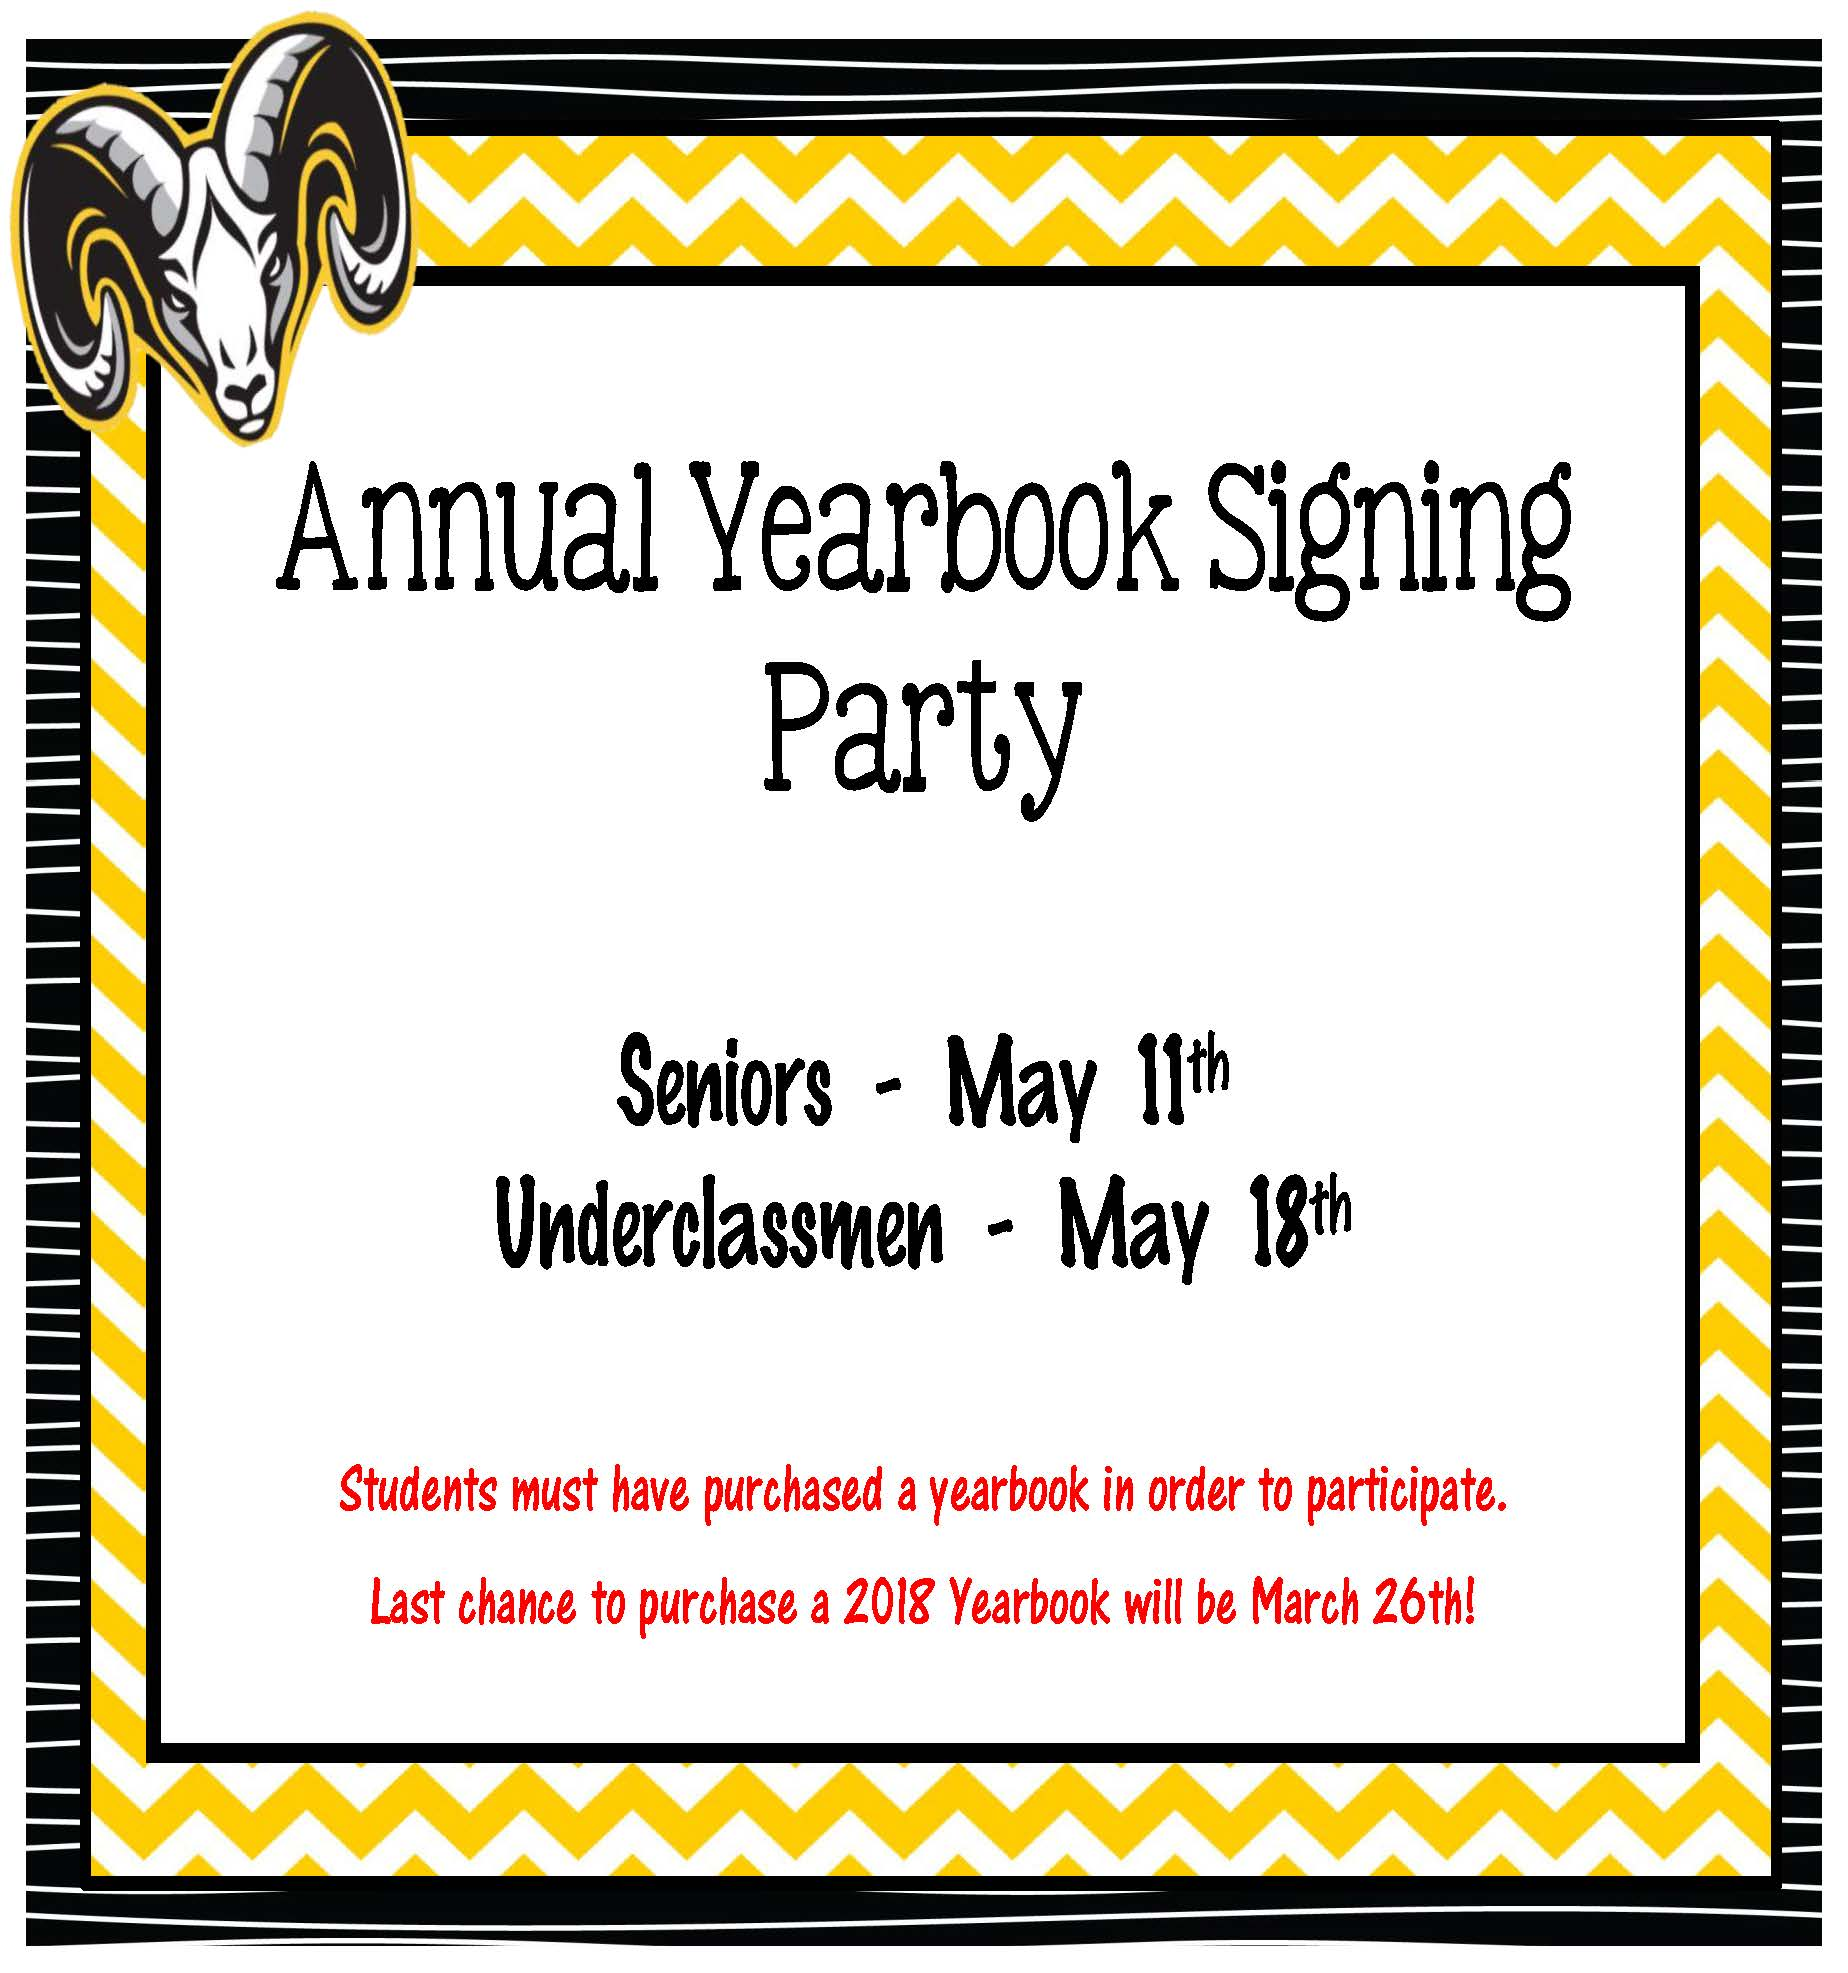 Annual Yearbook Signing Party